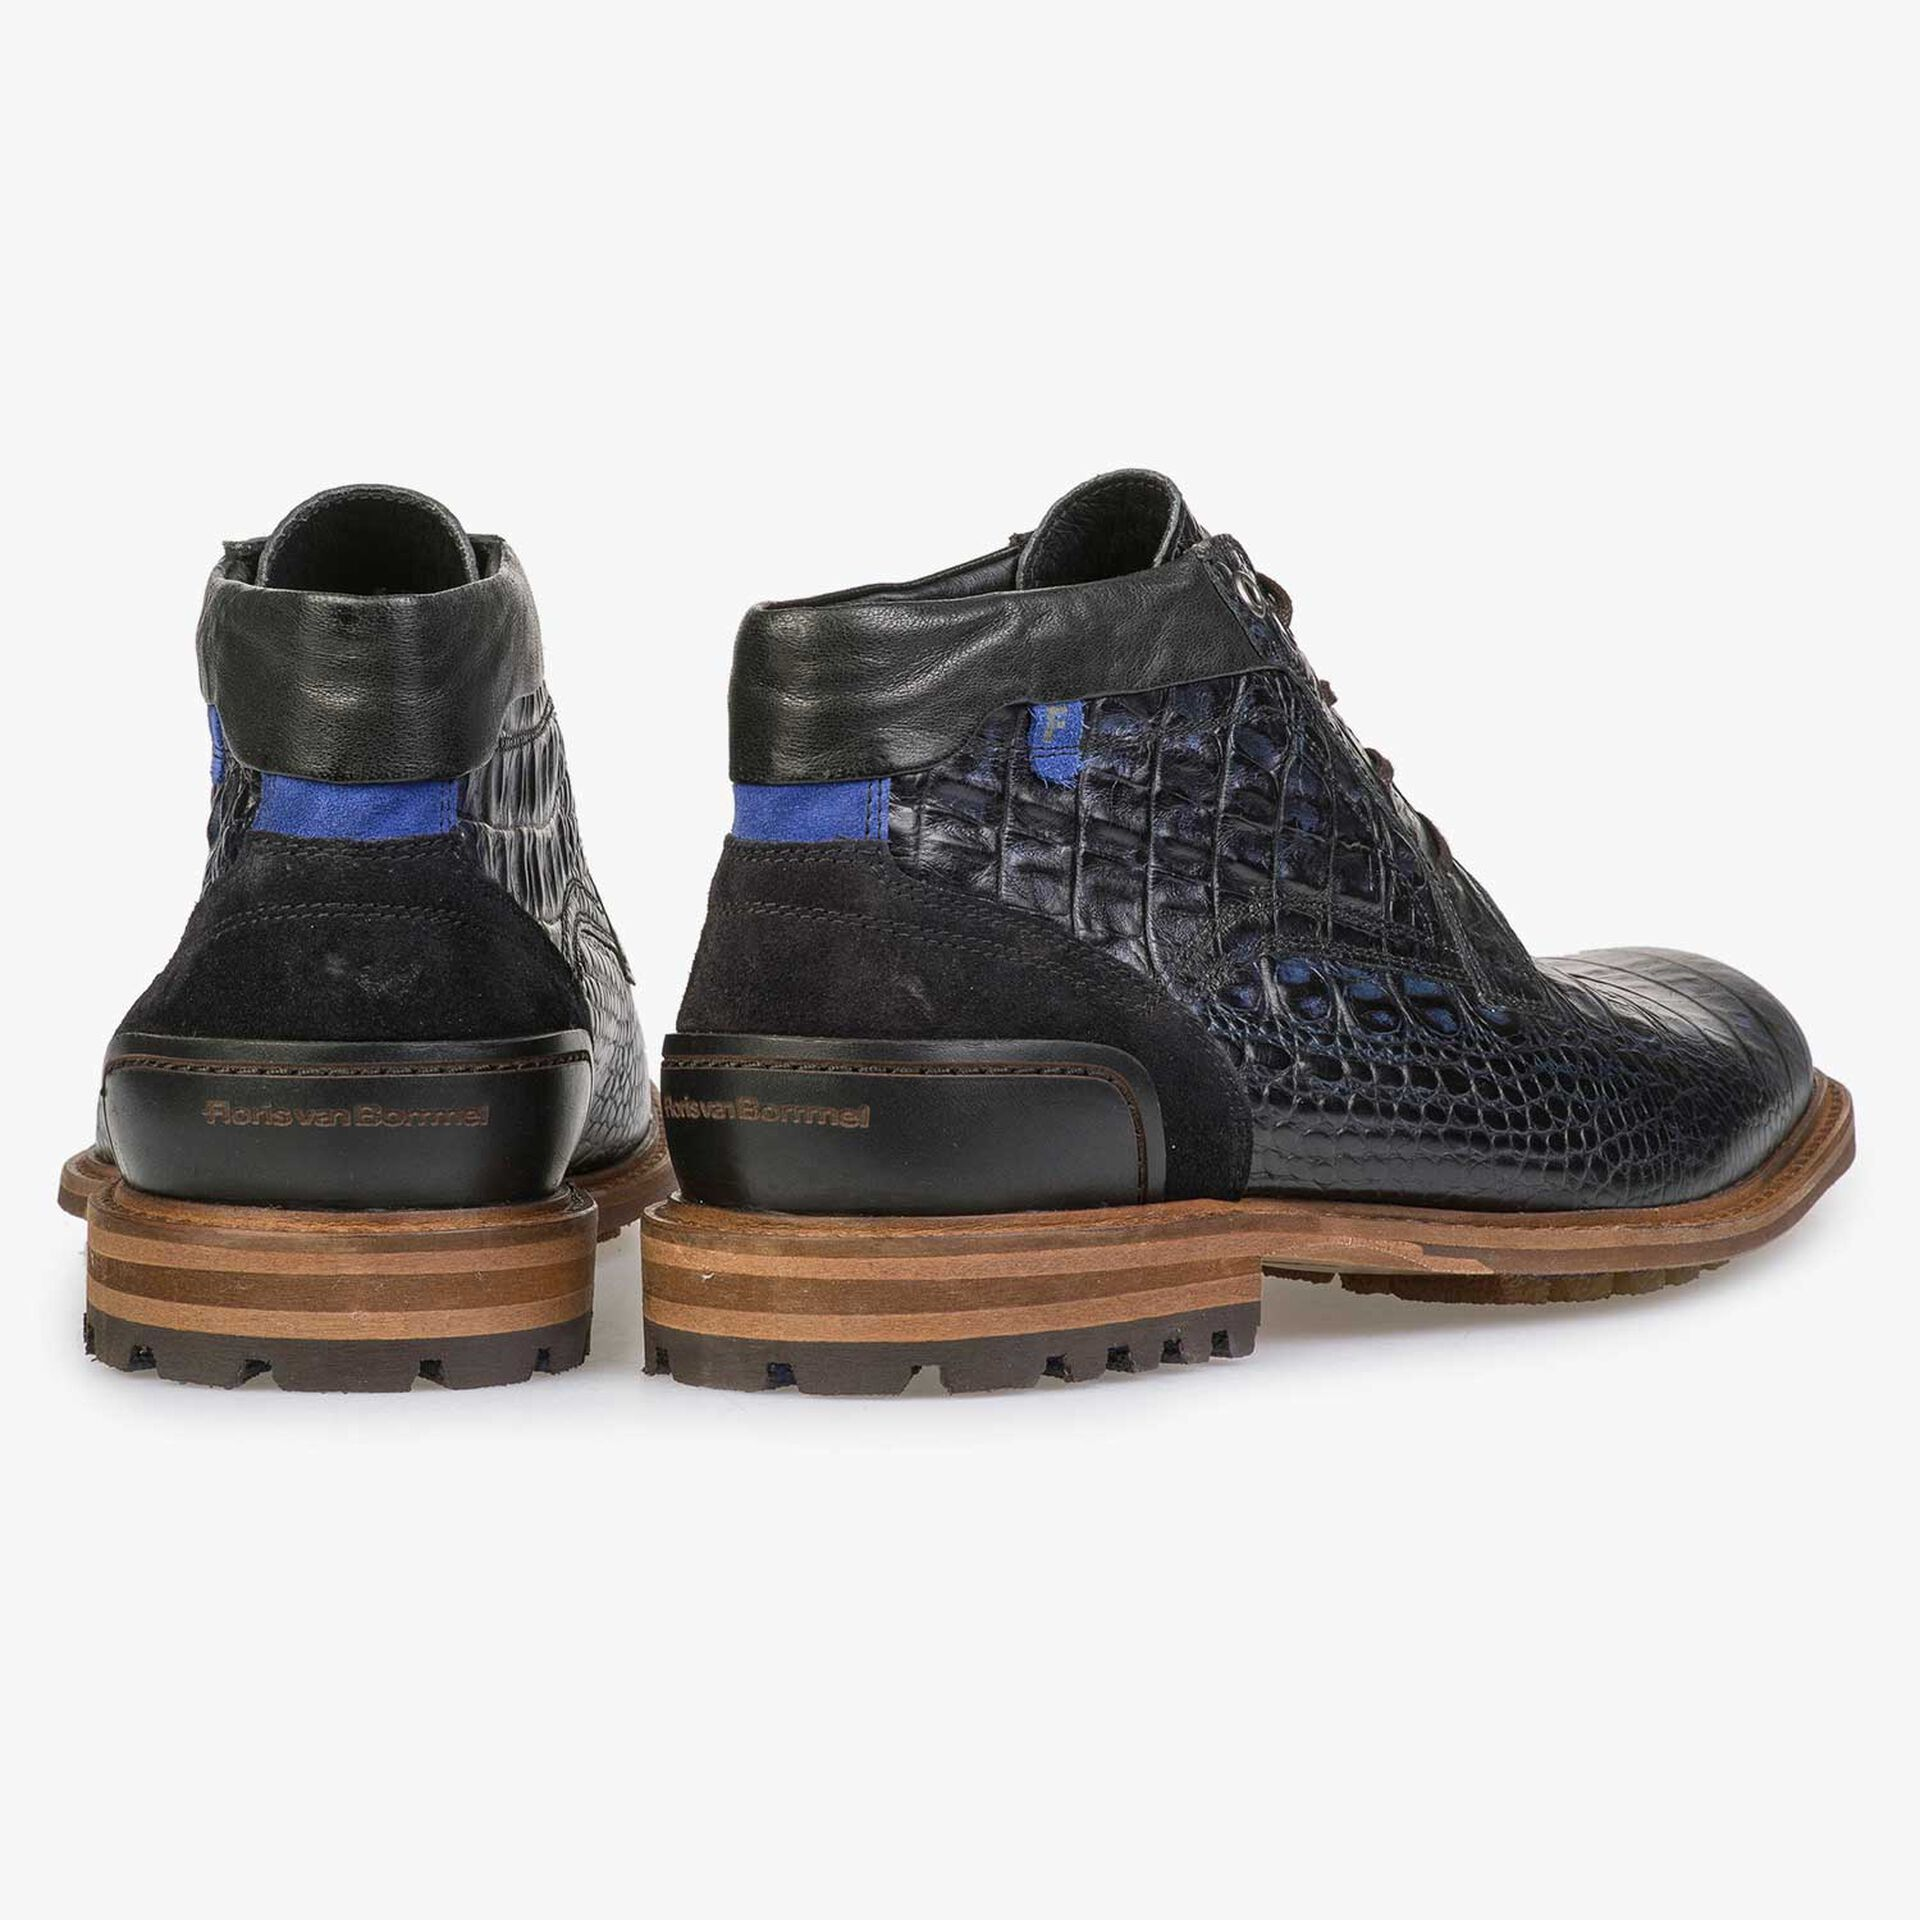 Blue leather lace boot with croco print